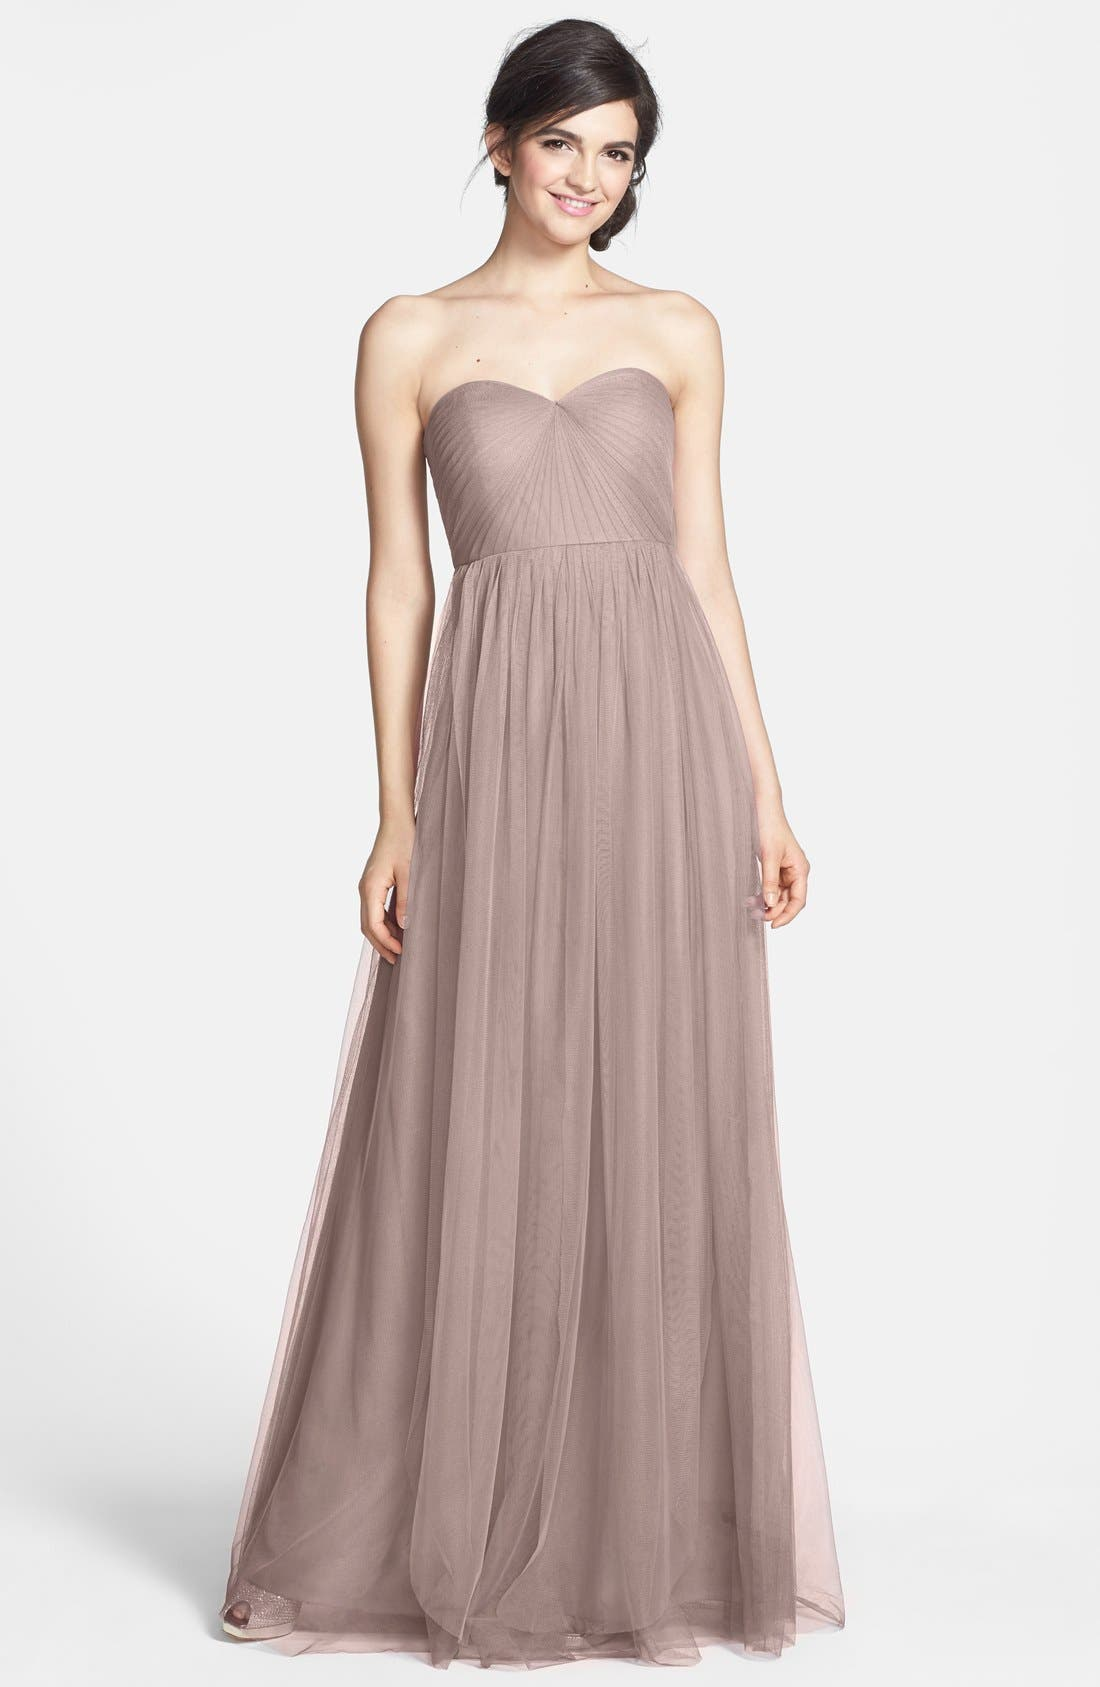 Alternate Image 1 Selected - Jenny Yoo Annabelle Convertible Tulle Column Dress